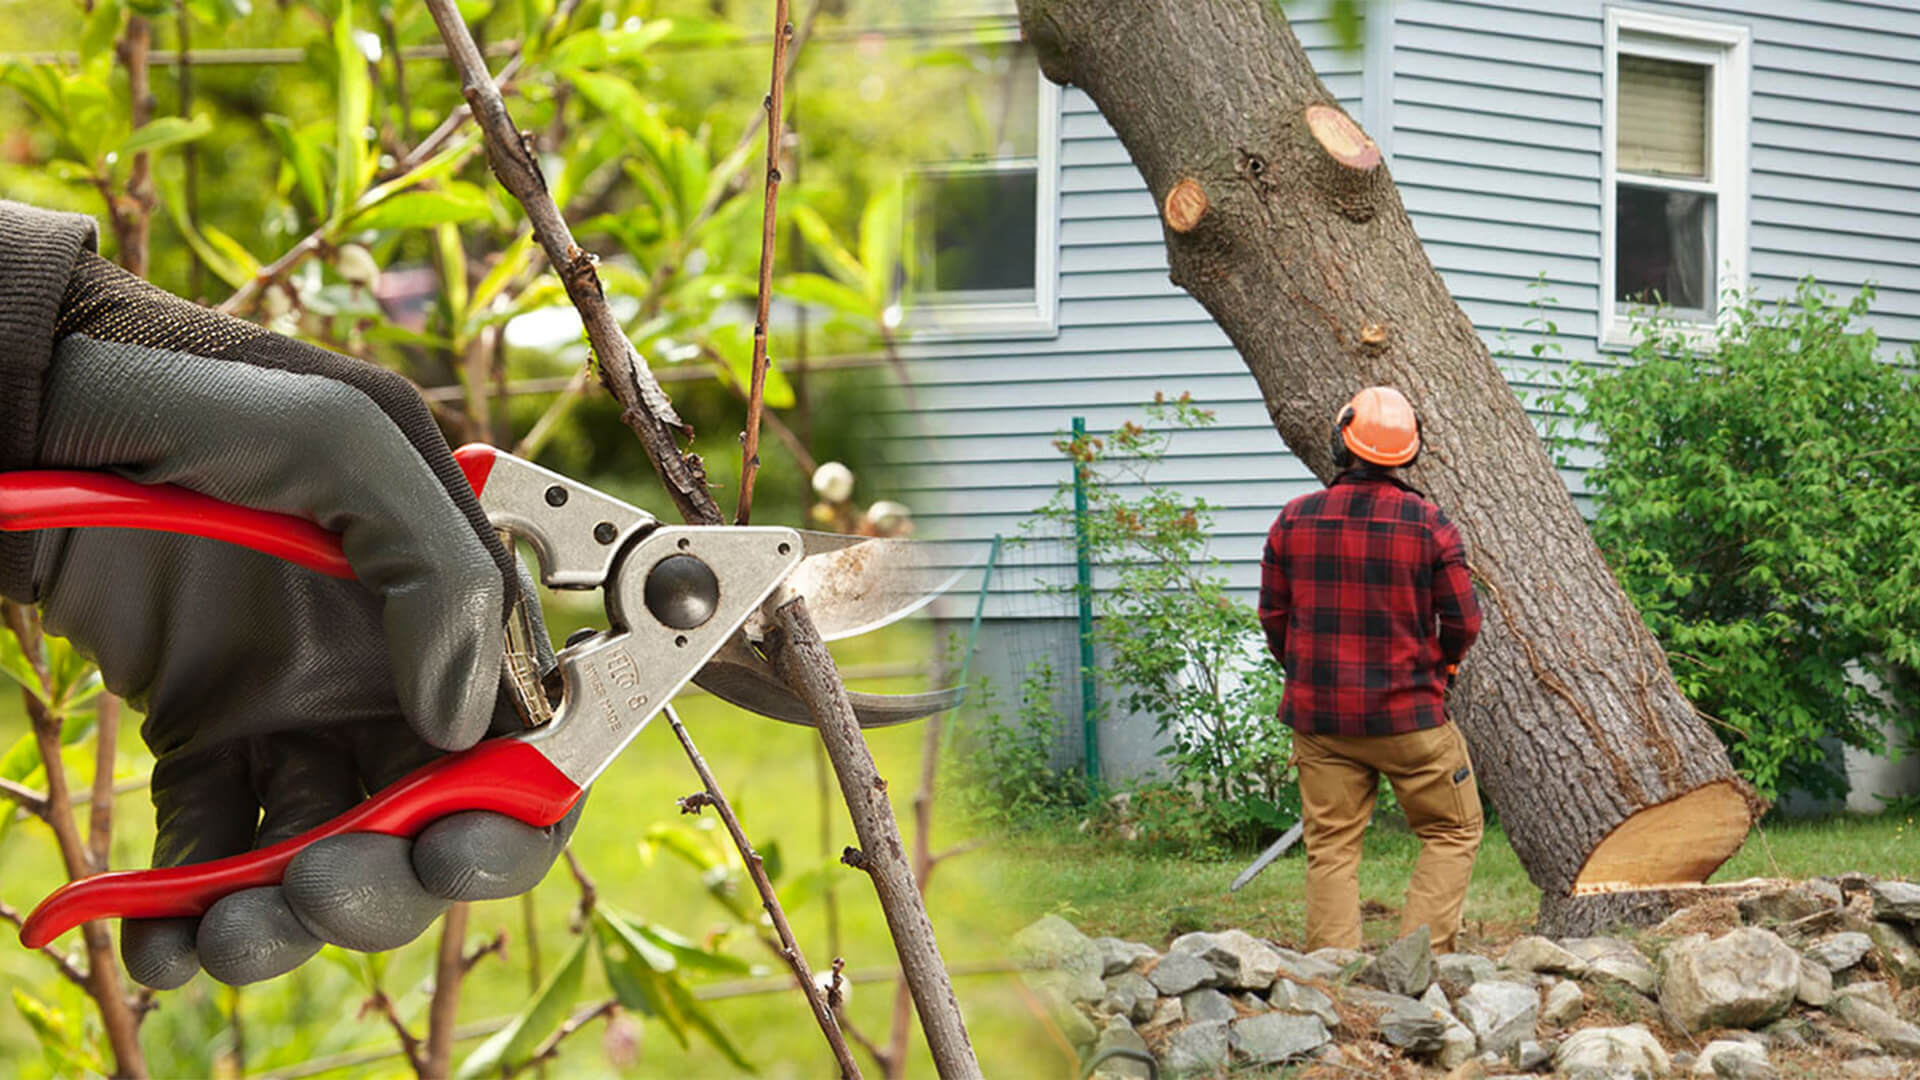 Tree pruning & tree removal-Pompano Beach FL Tree Trimming and Stump Grinding Services-We Offer Tree Trimming Services, Tree Removal, Tree Pruning, Tree Cutting, Residential and Commercial Tree Trimming Services, Storm Damage, Emergency Tree Removal, Land Clearing, Tree Companies, Tree Care Service, Stump Grinding, and we're the Best Tree Trimming Company Near You Guaranteed!